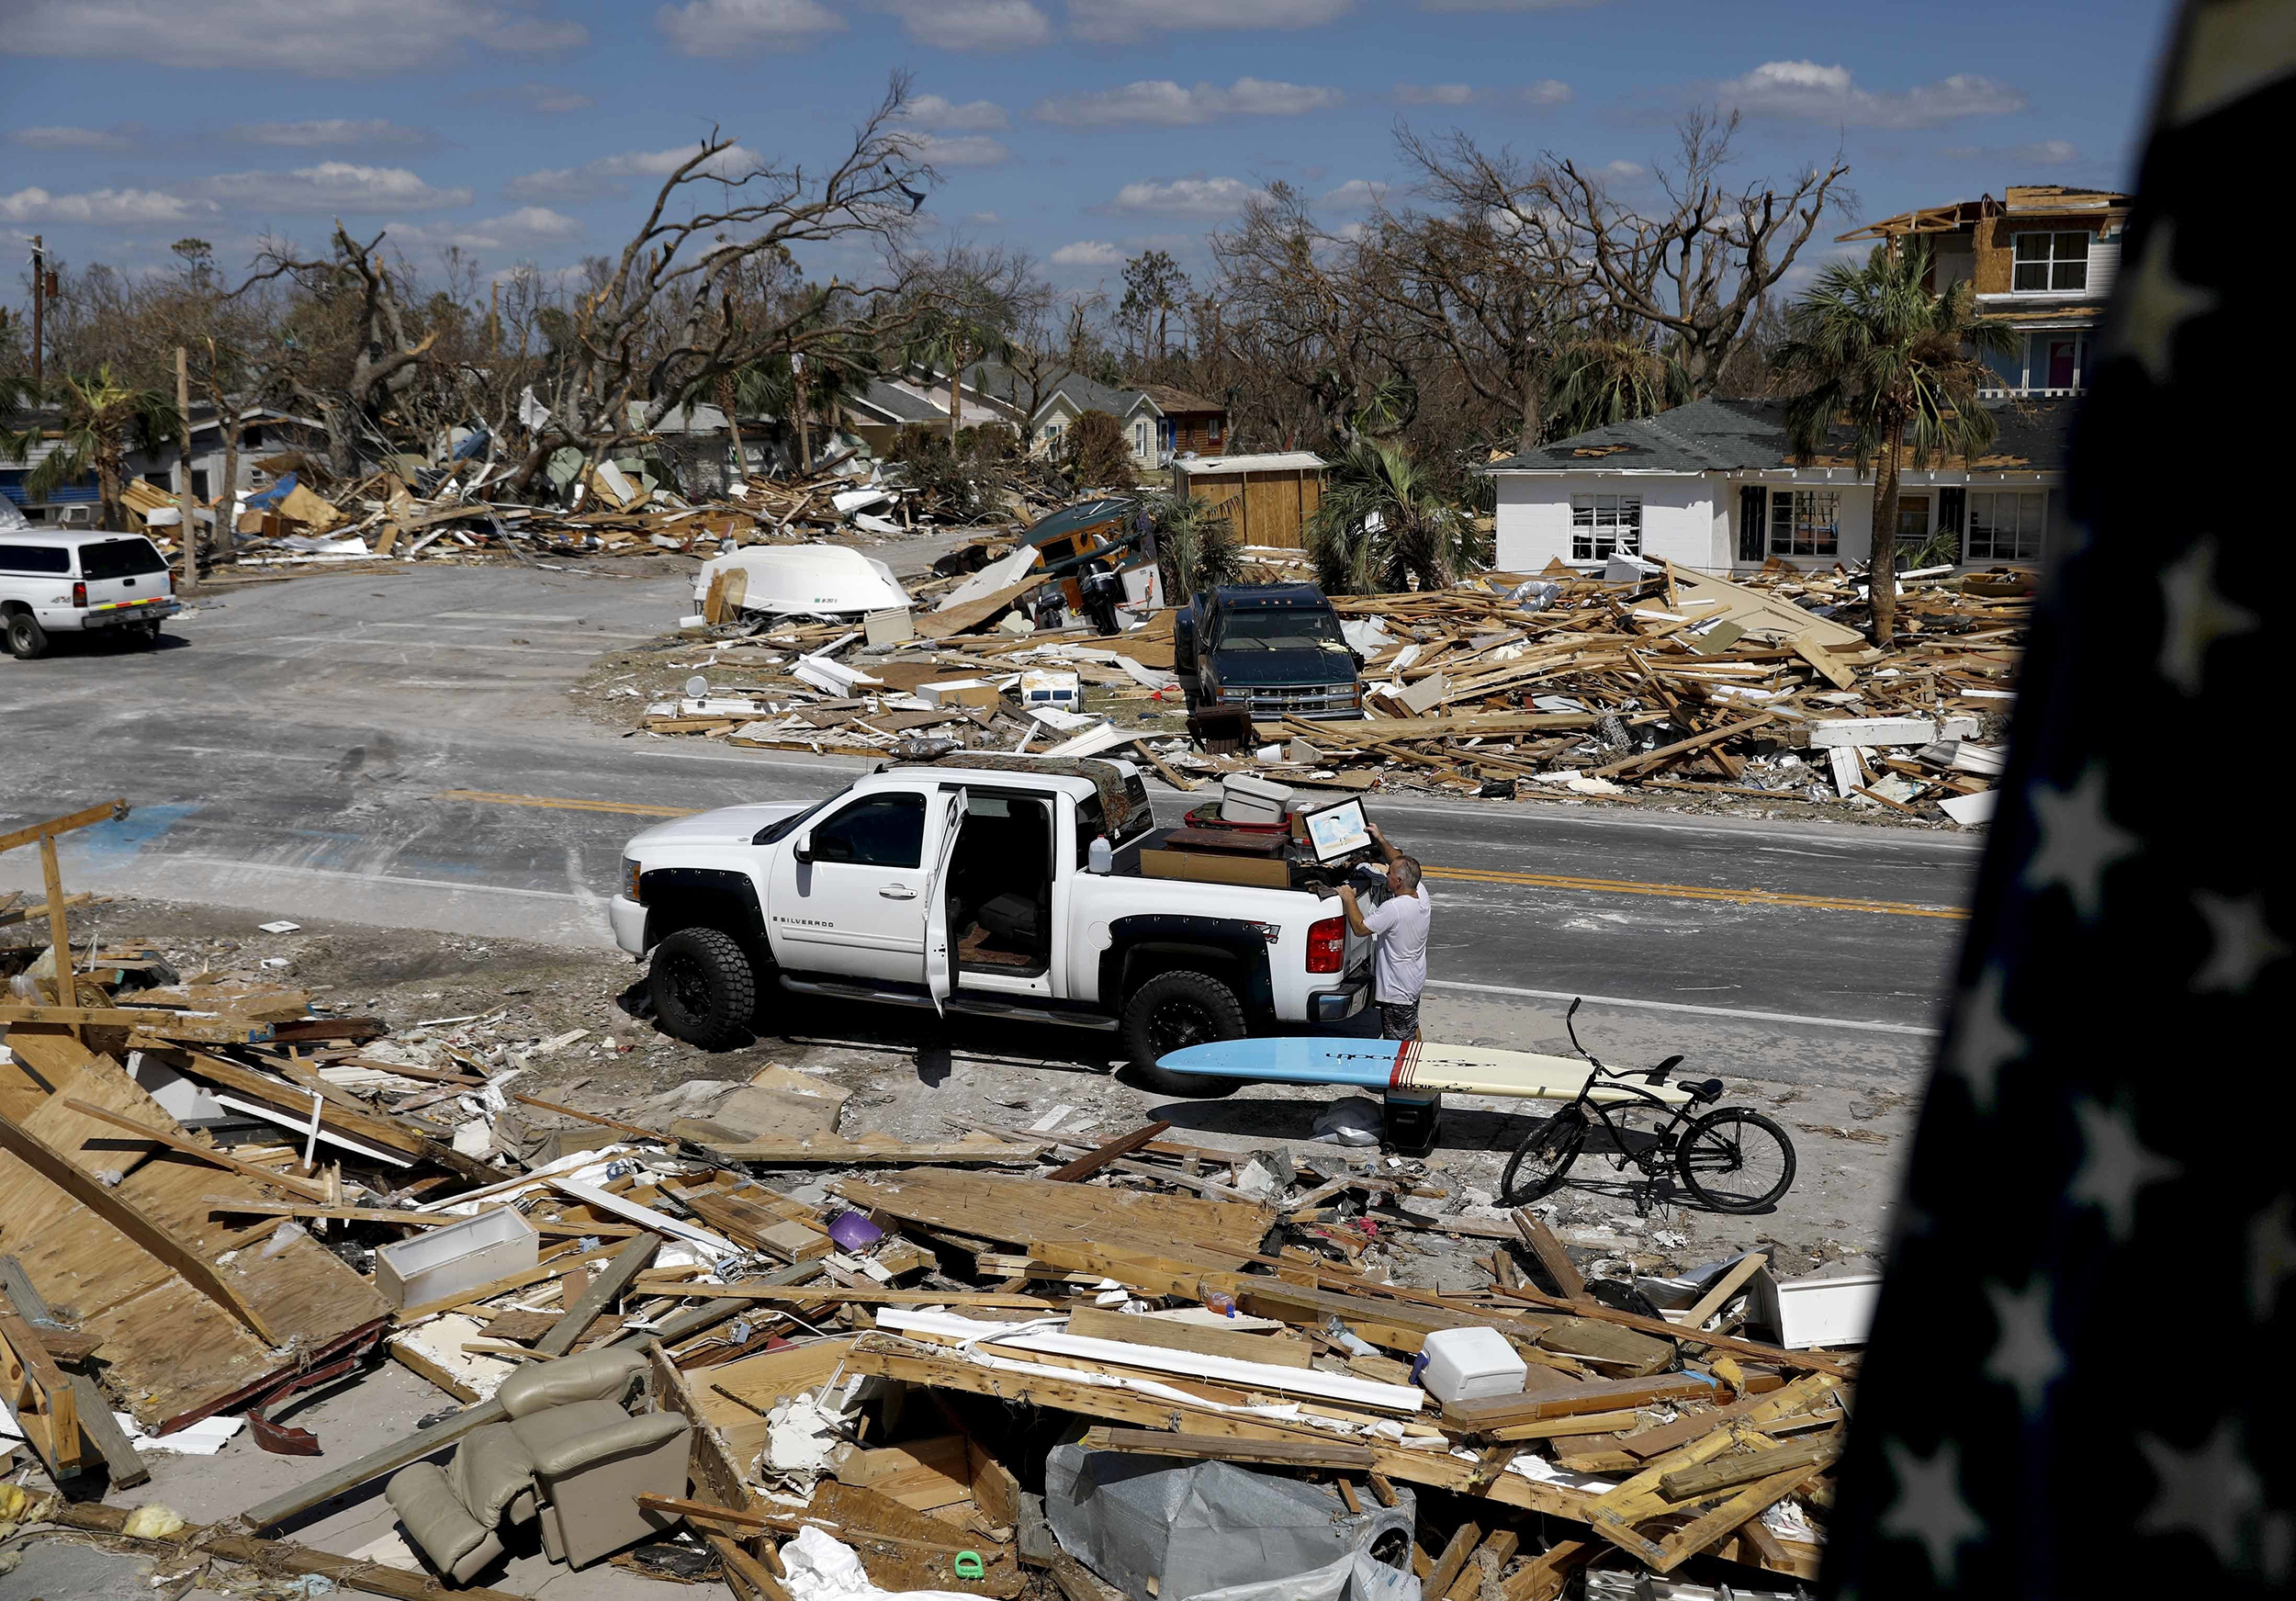 Hurricane survivors band together after entire Florida towns flattened